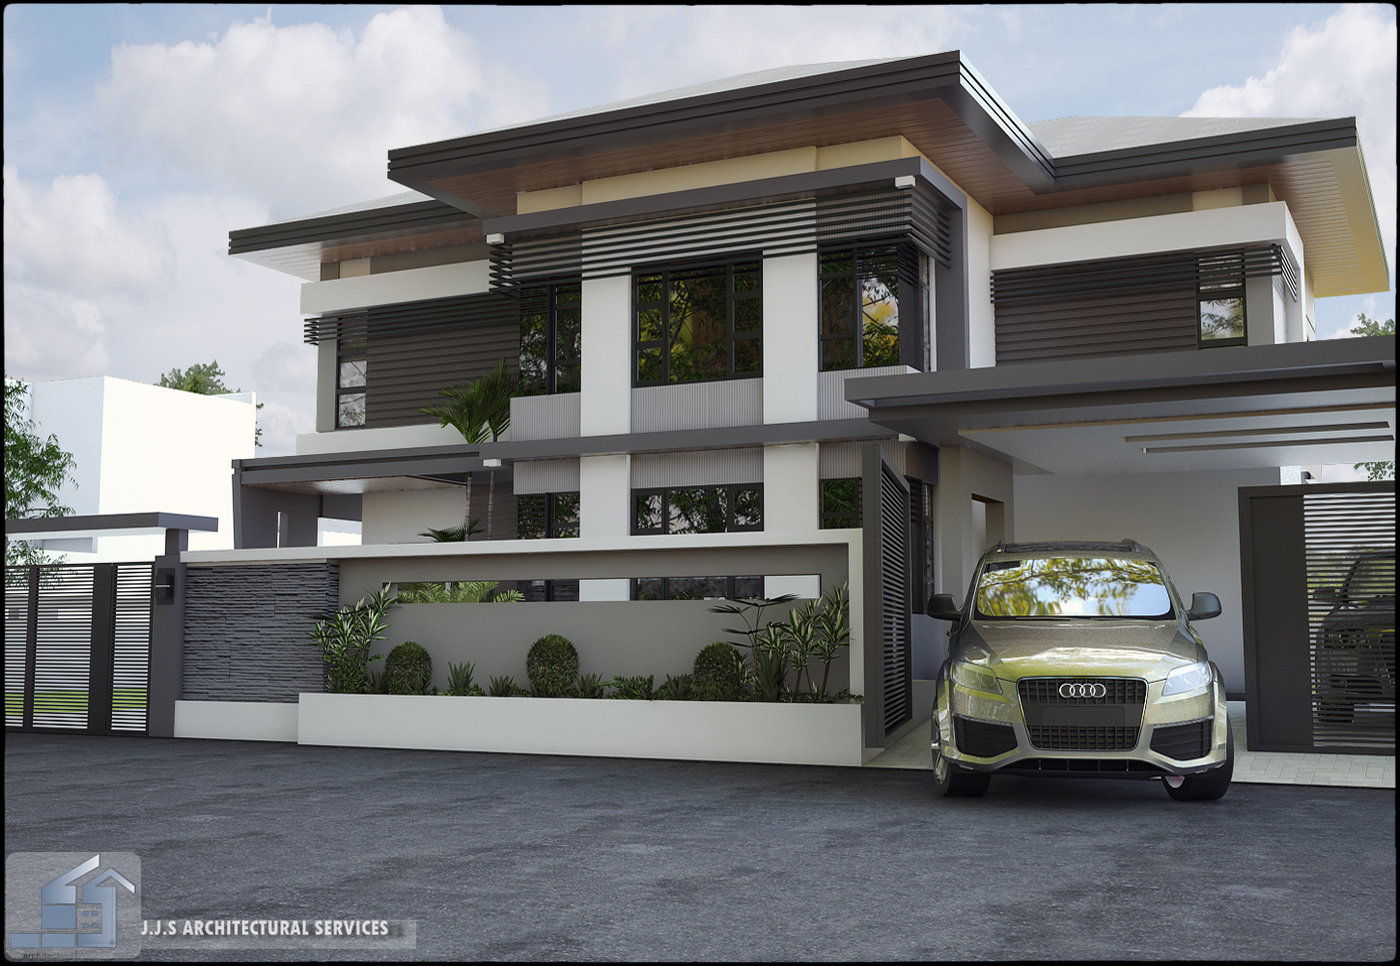 2 Storey Residential House By J.J.S